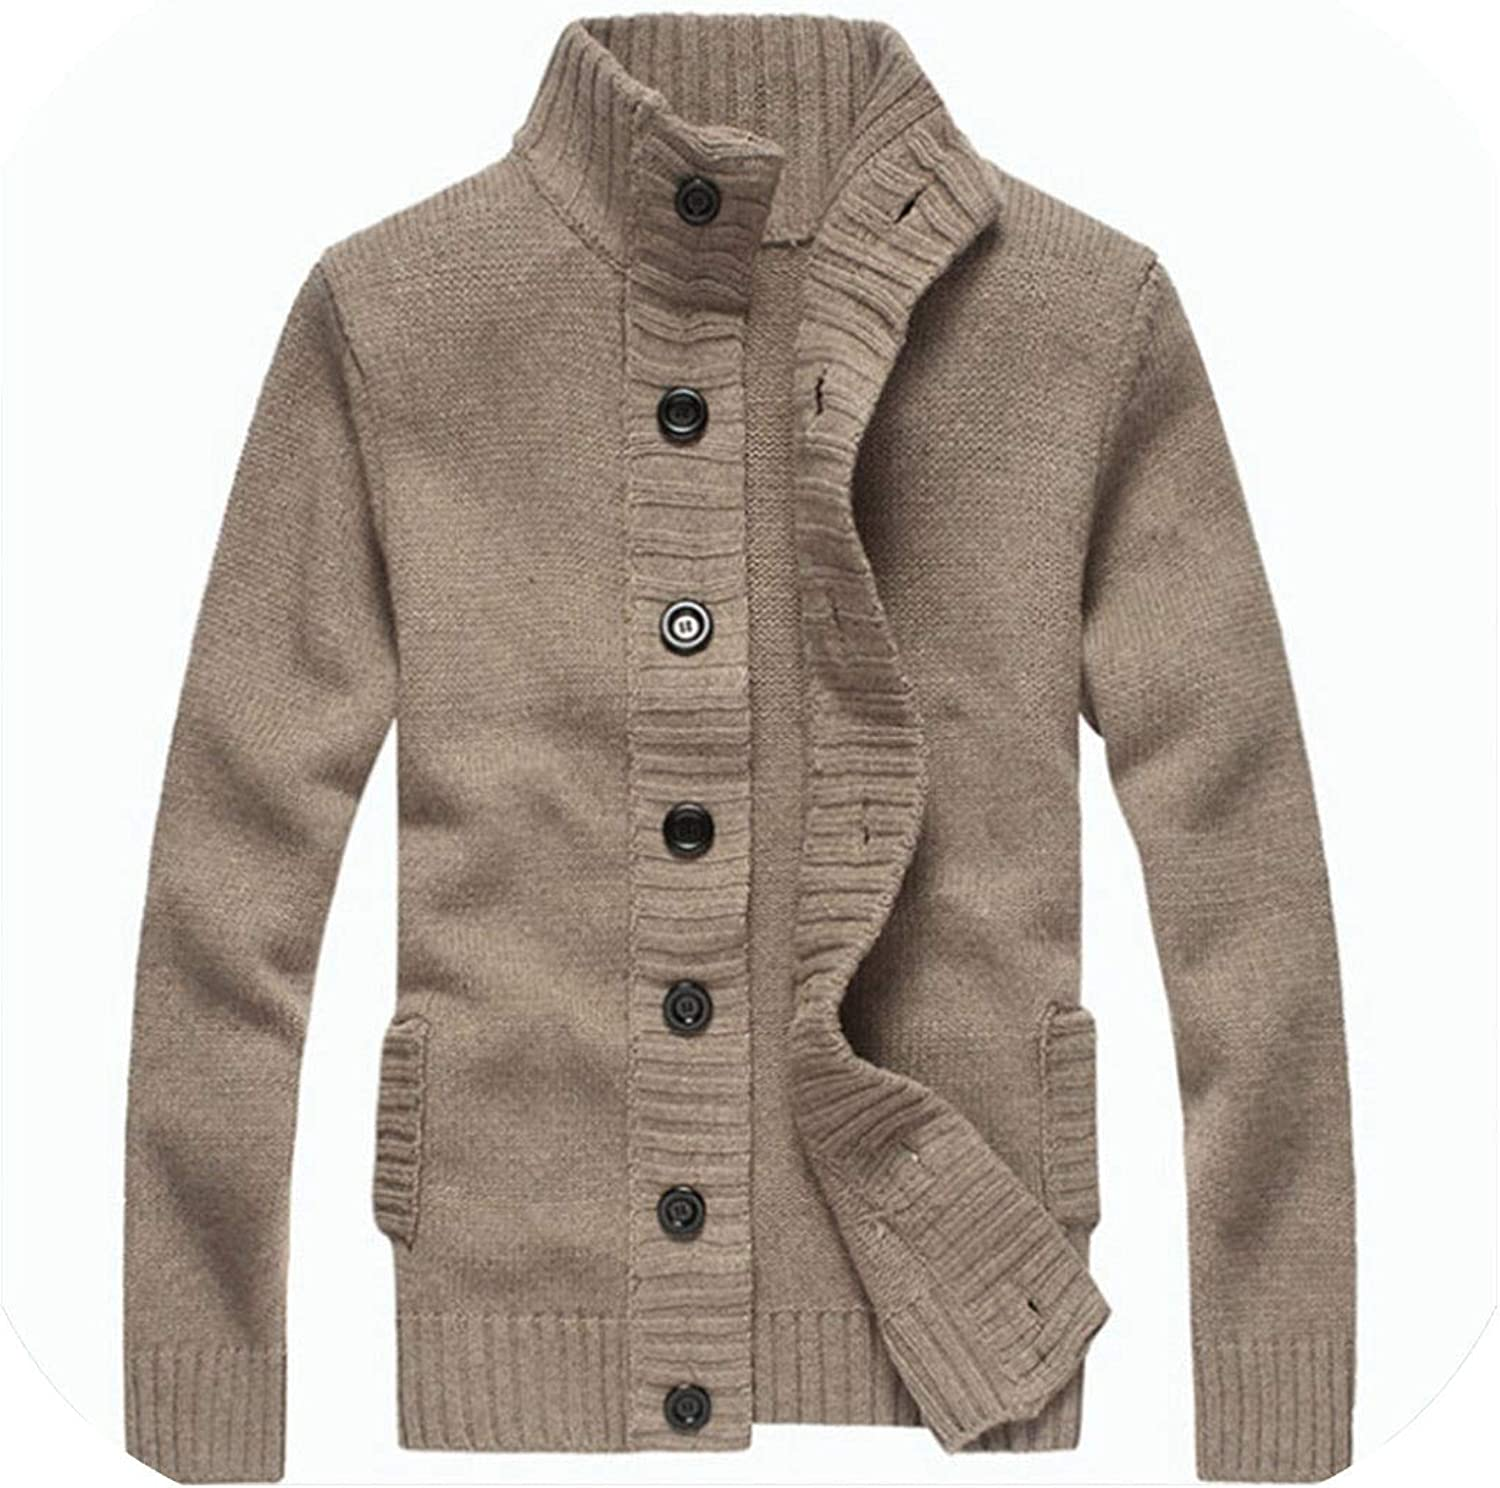 Thick New for Mens Cardigan Slim Fit Jumpers Knitwear Warm Clothing Men